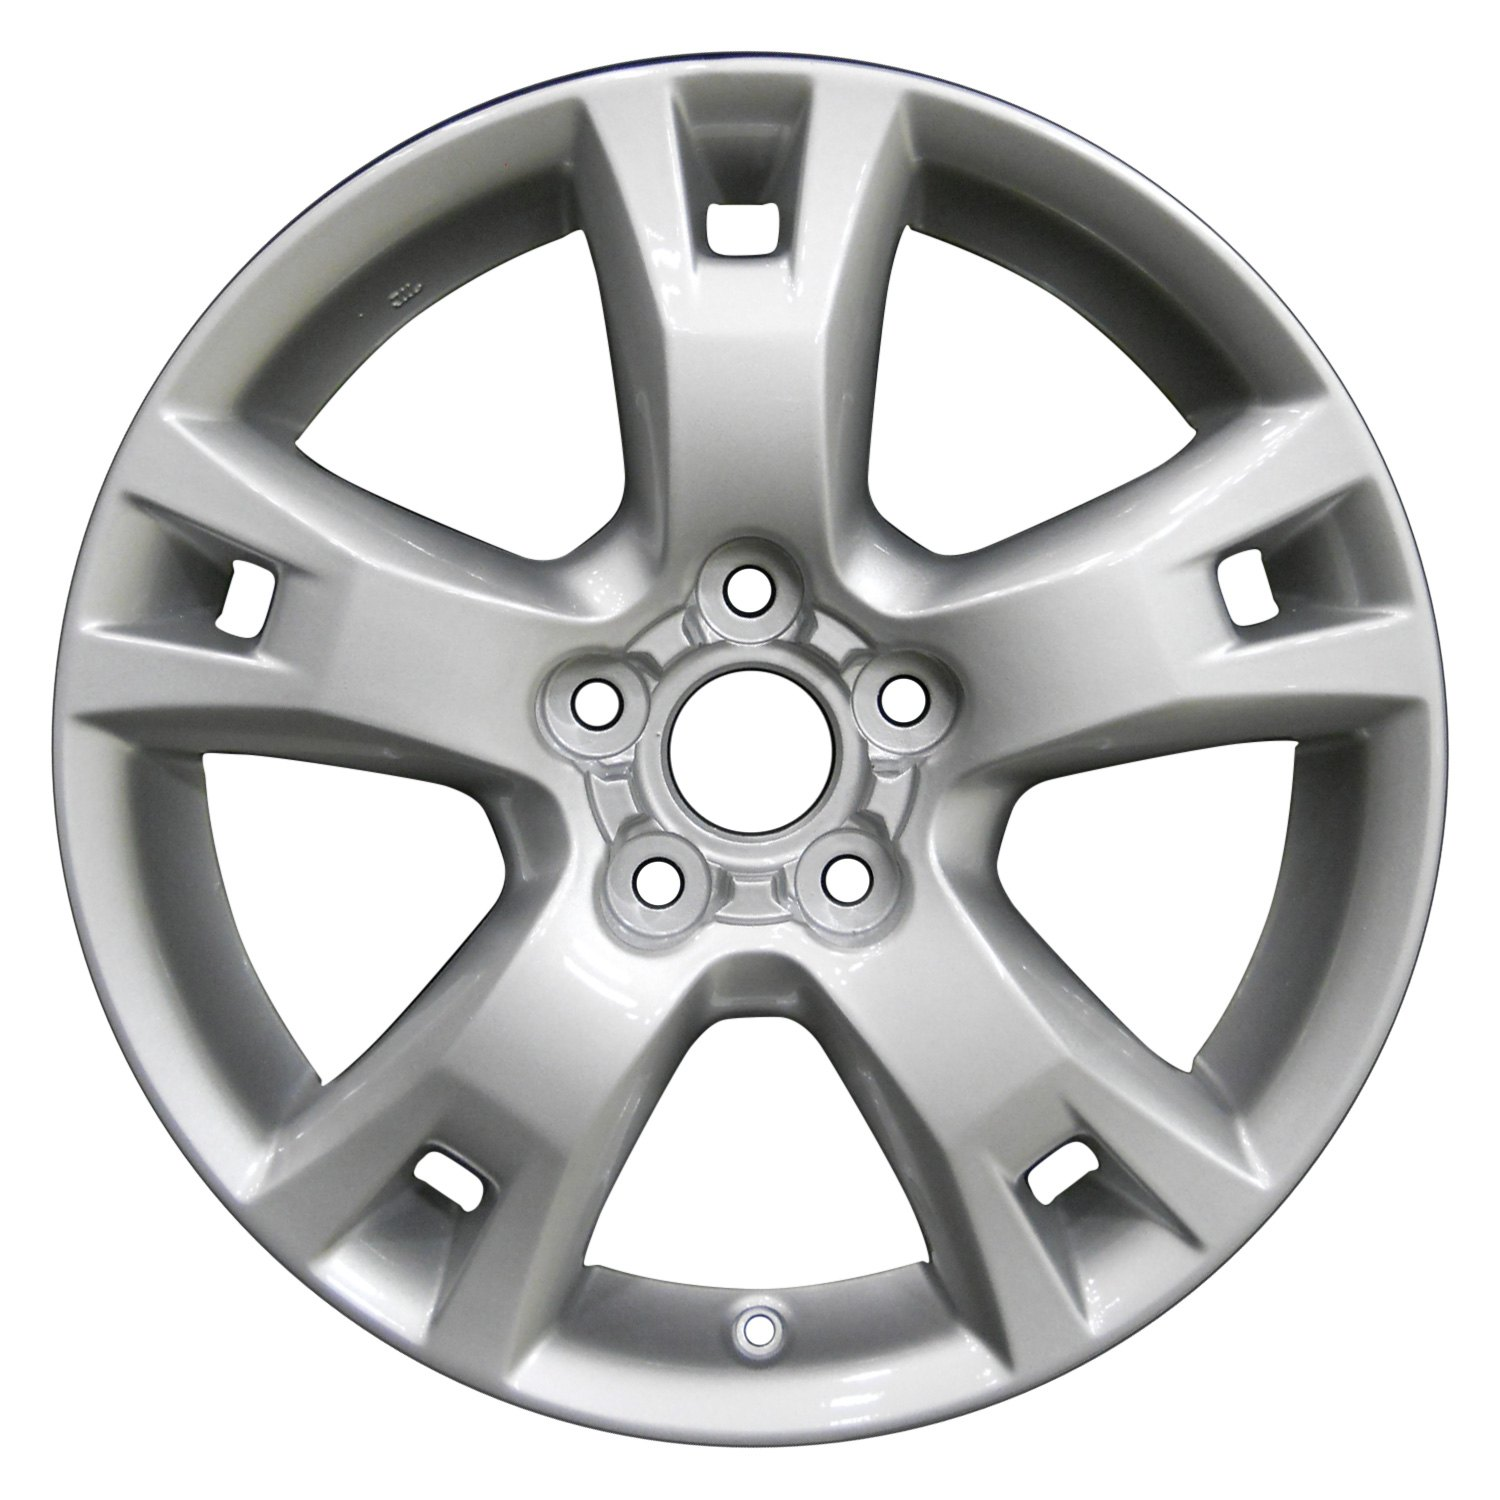 Perfection Wheel 17 X 7 5 Spoke Bright Medium Silver Full Face Alloy